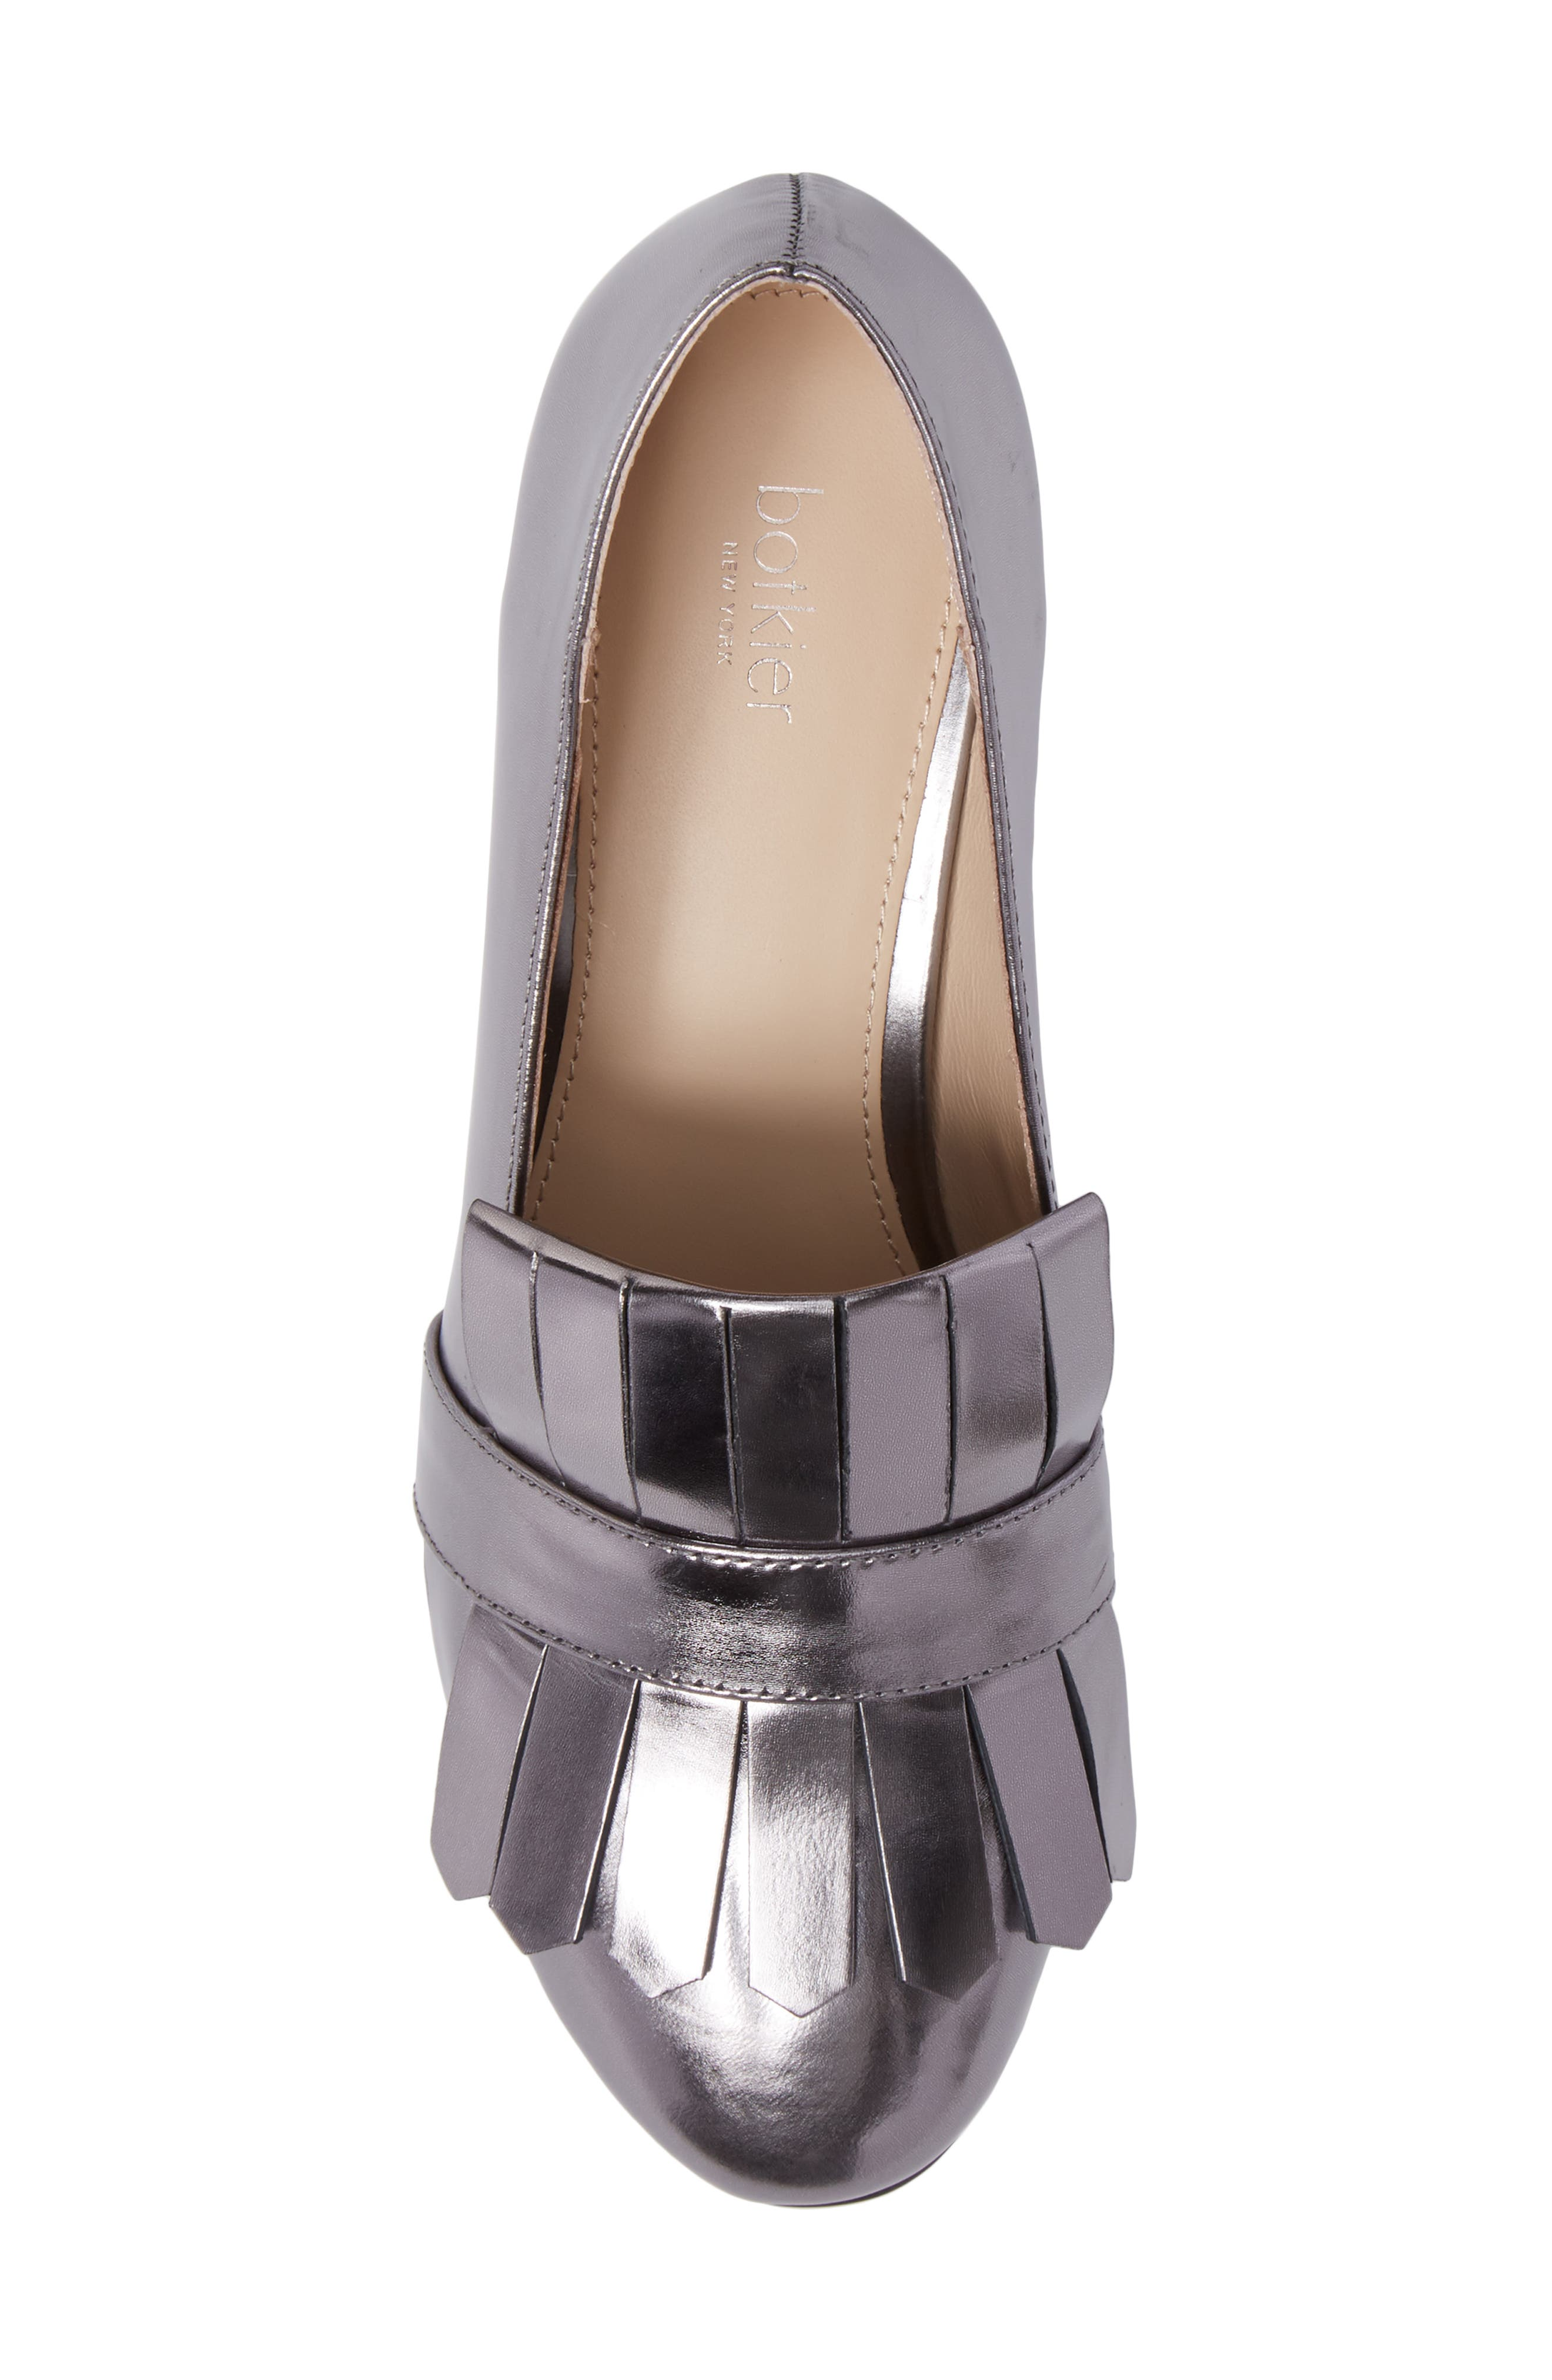 Olive Loafer Pump,                             Alternate thumbnail 5, color,                             PEWTER LEATHER